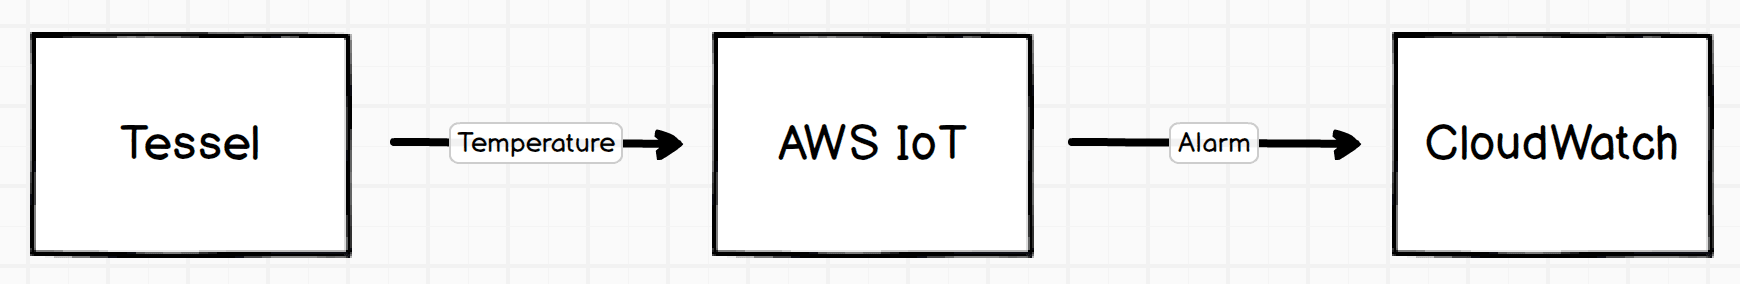 Setup of IoT example